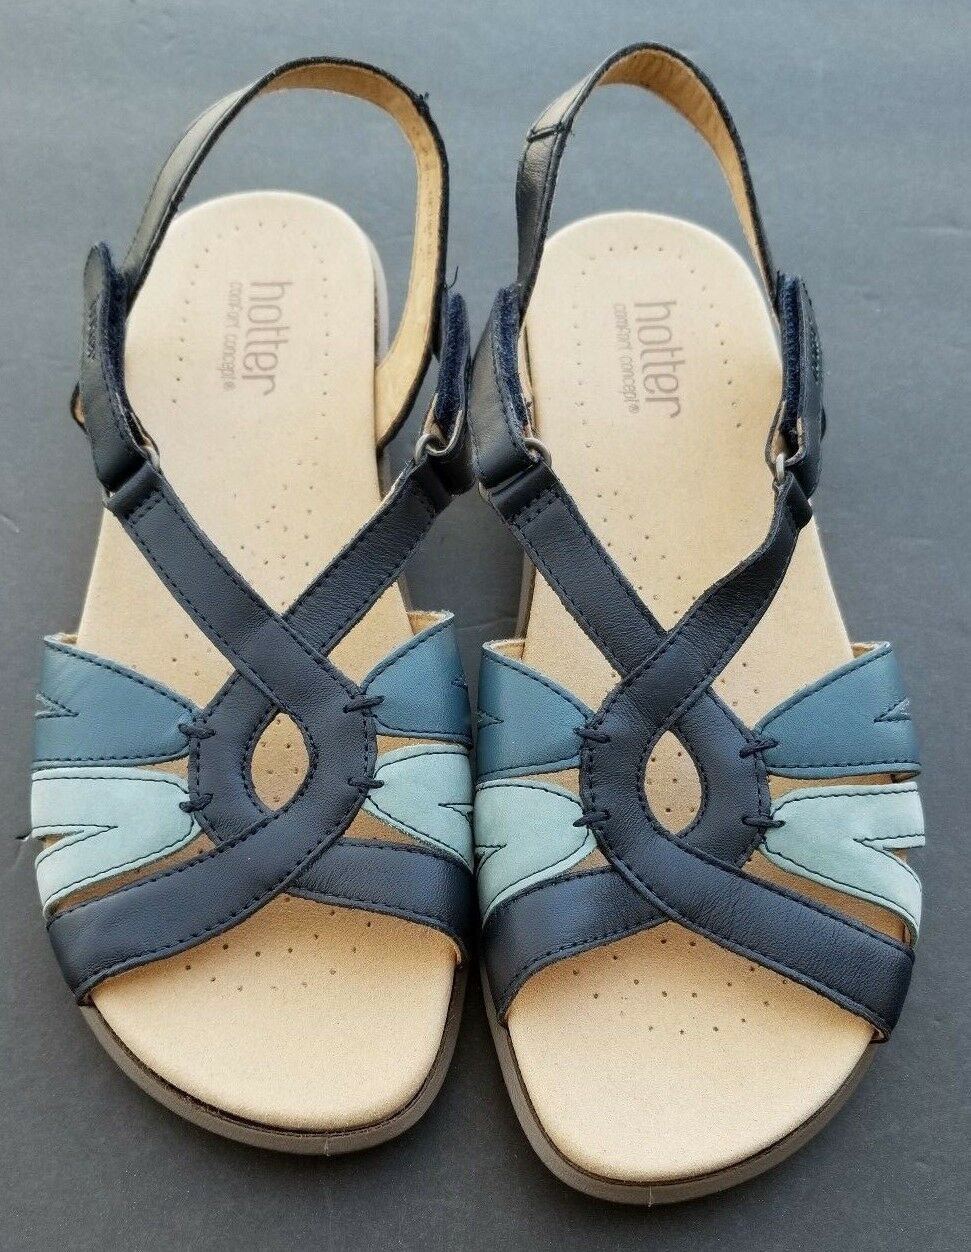 Hotter Flare Leather Sandals Size 9 EU 41